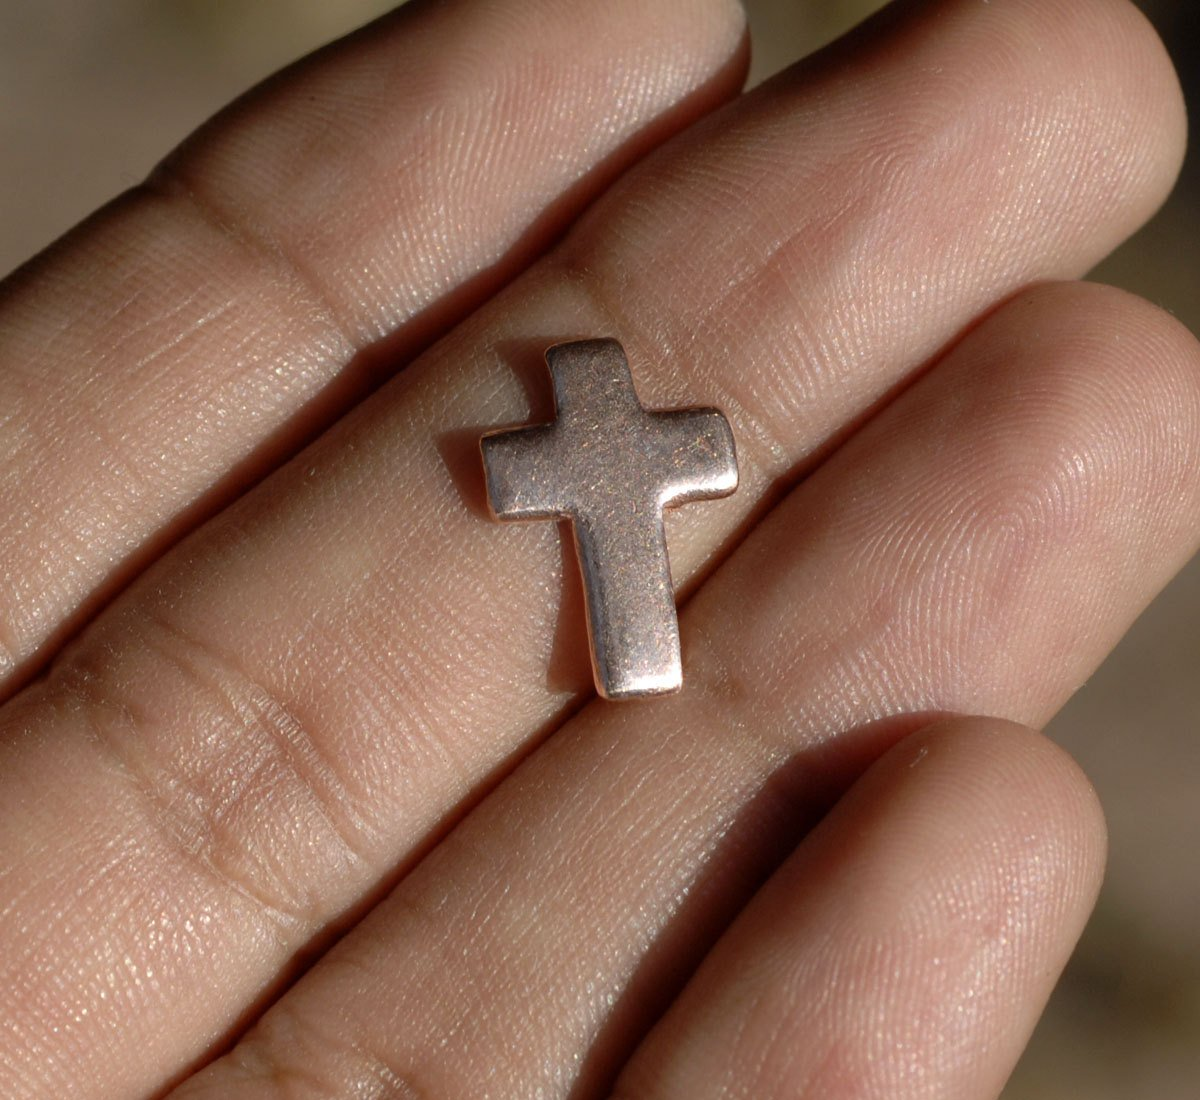 Cross 11mm x 15mm Religious, Metal Blanks Cutout for Enameling Stamping Soldering - Variety of Metals  6 pieces